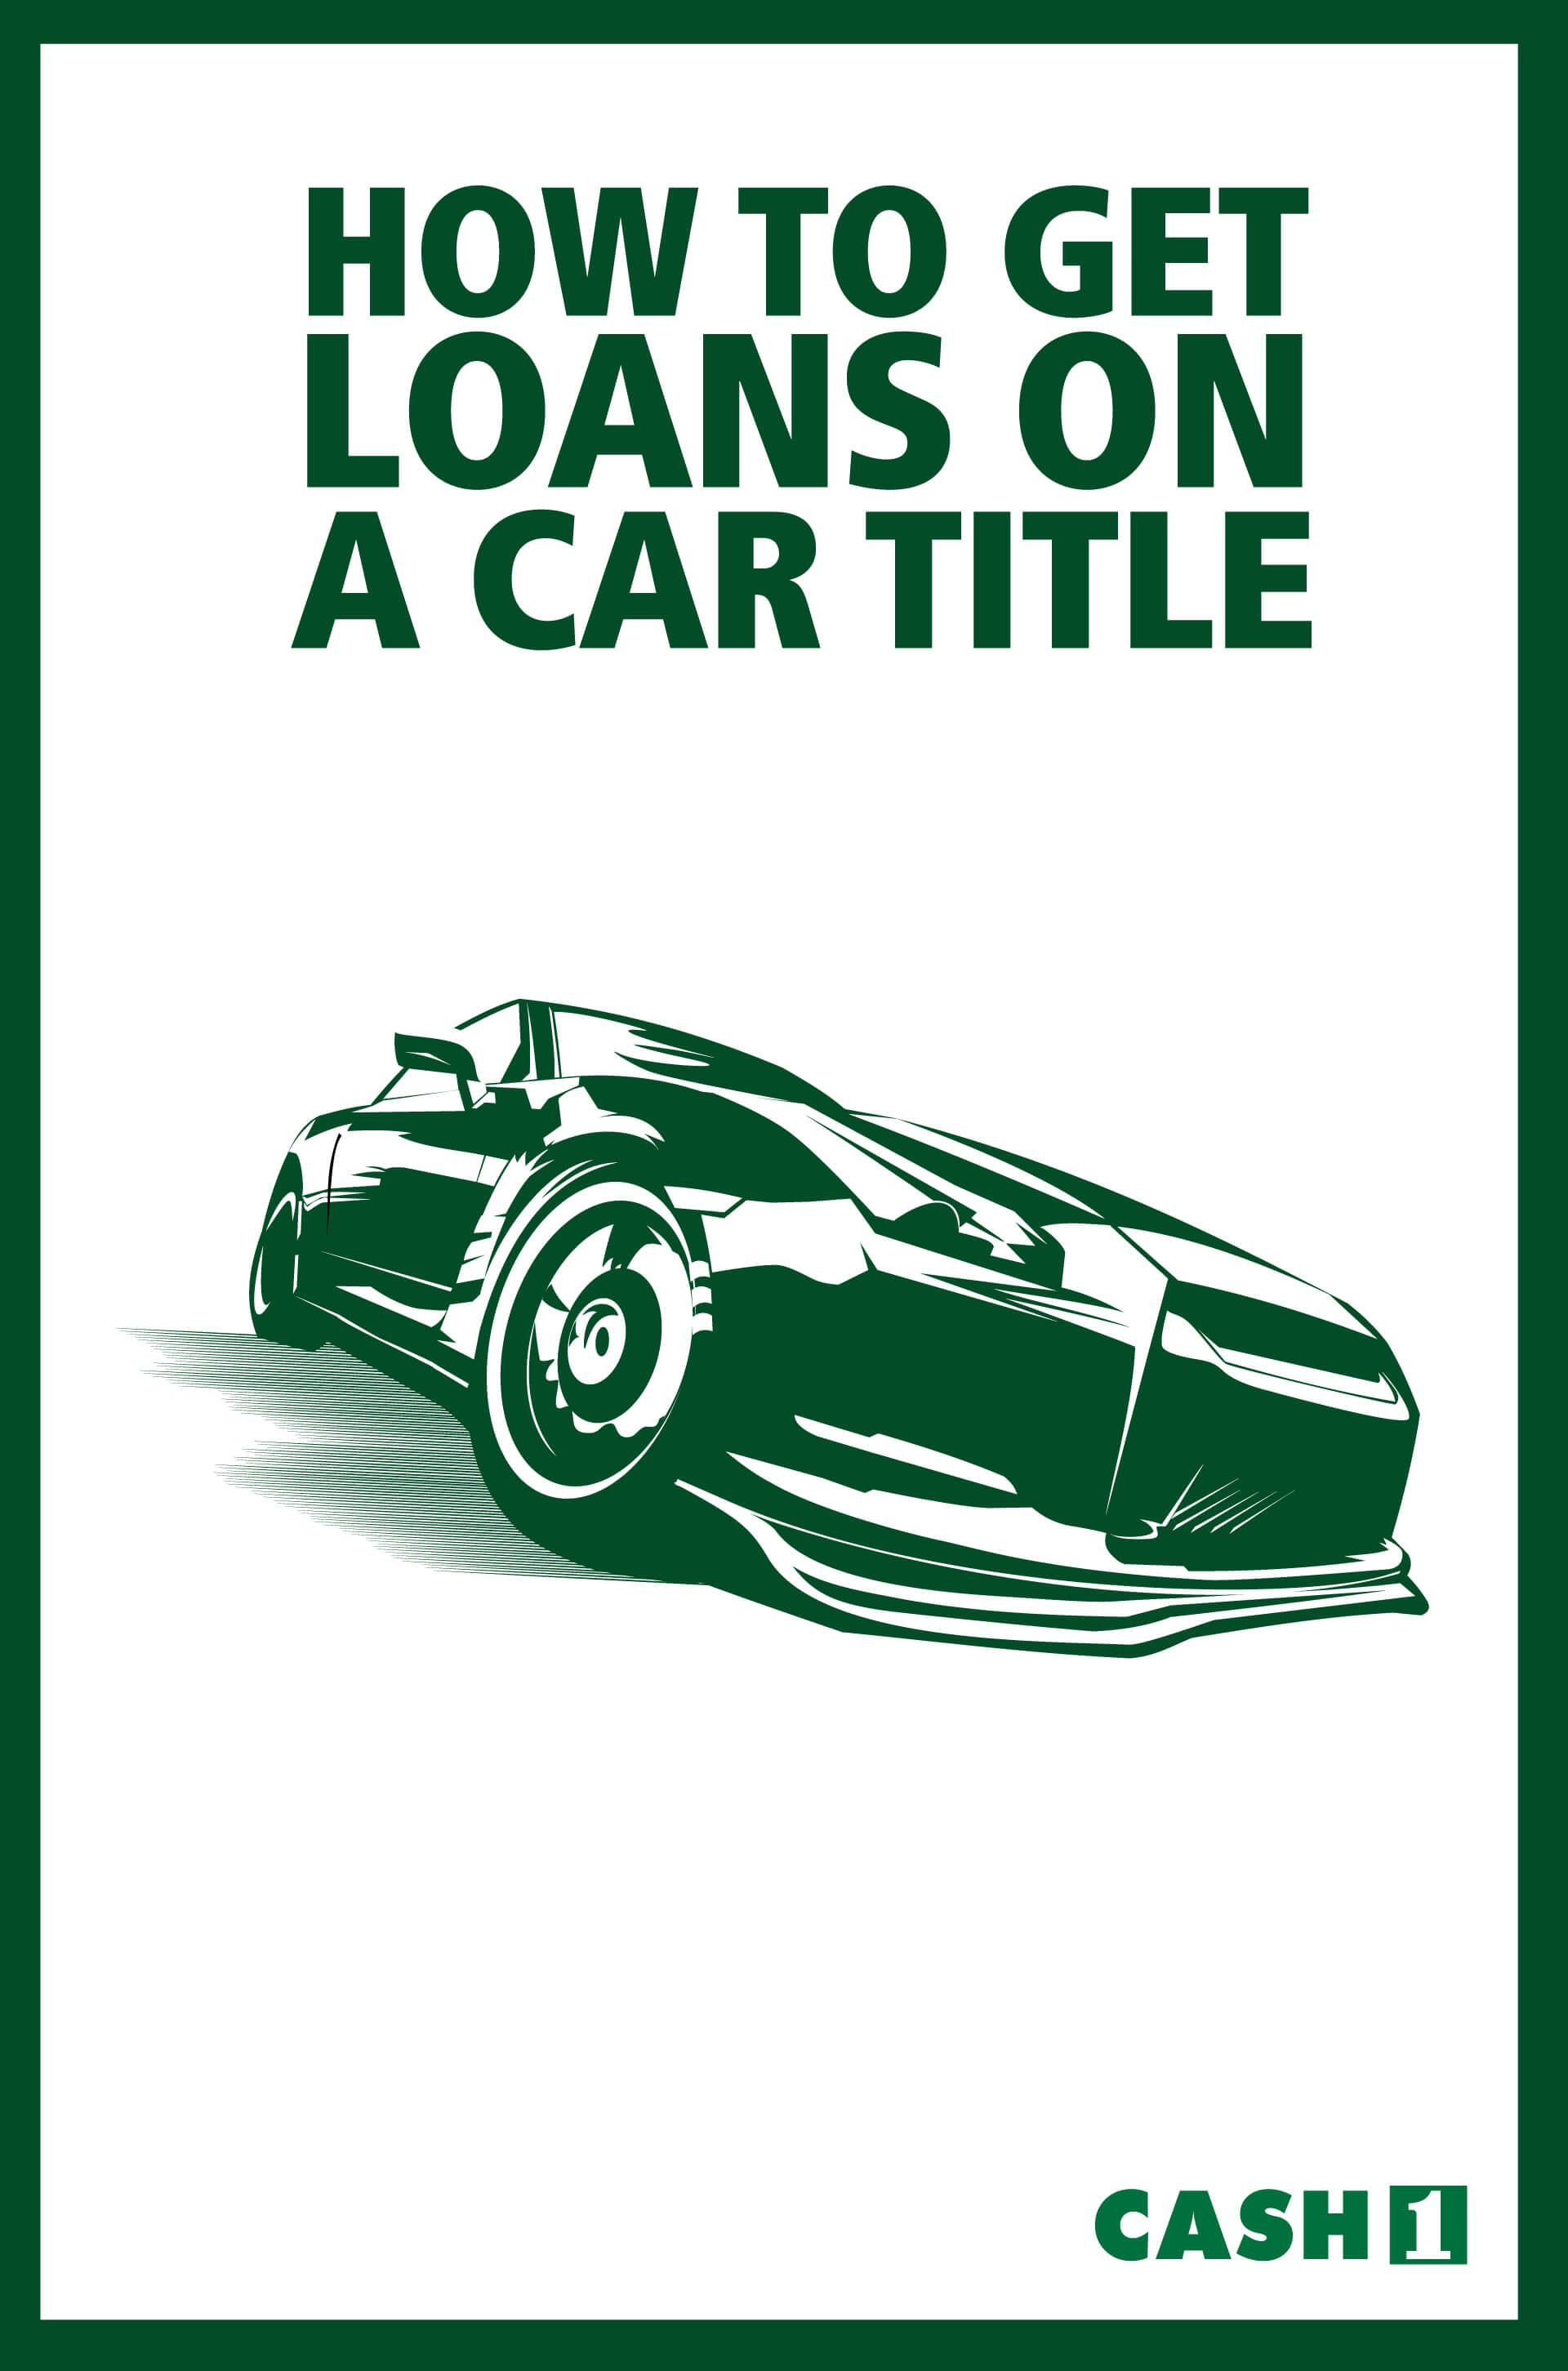 Get 100 to 50,000 today for loans on car titles in